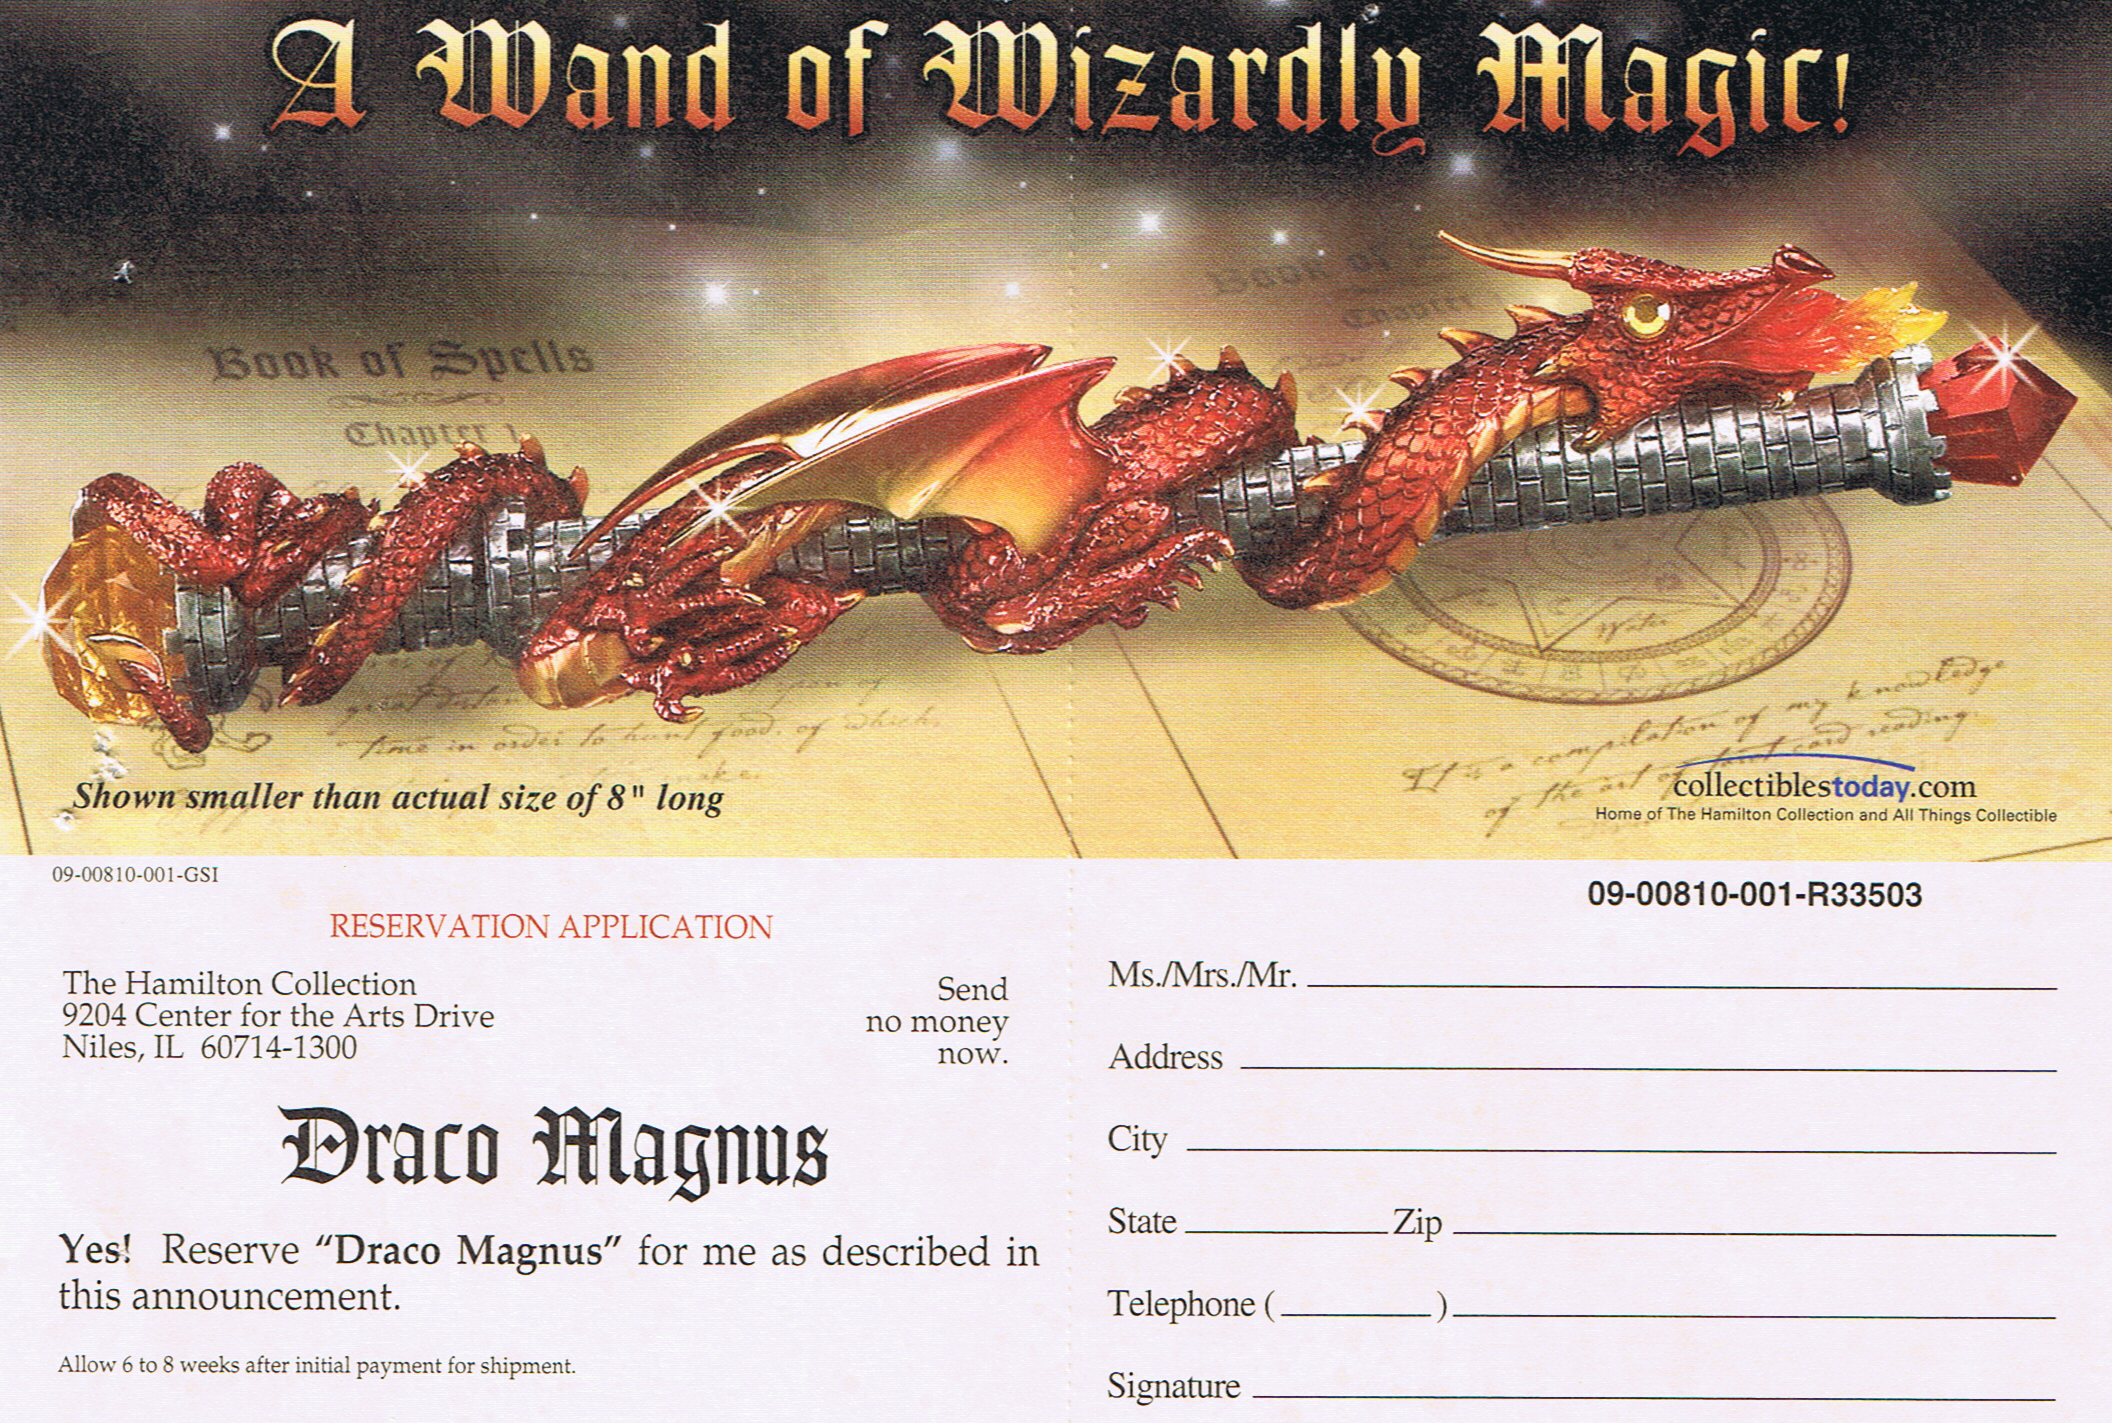 a_wand_of_wizardly_magic